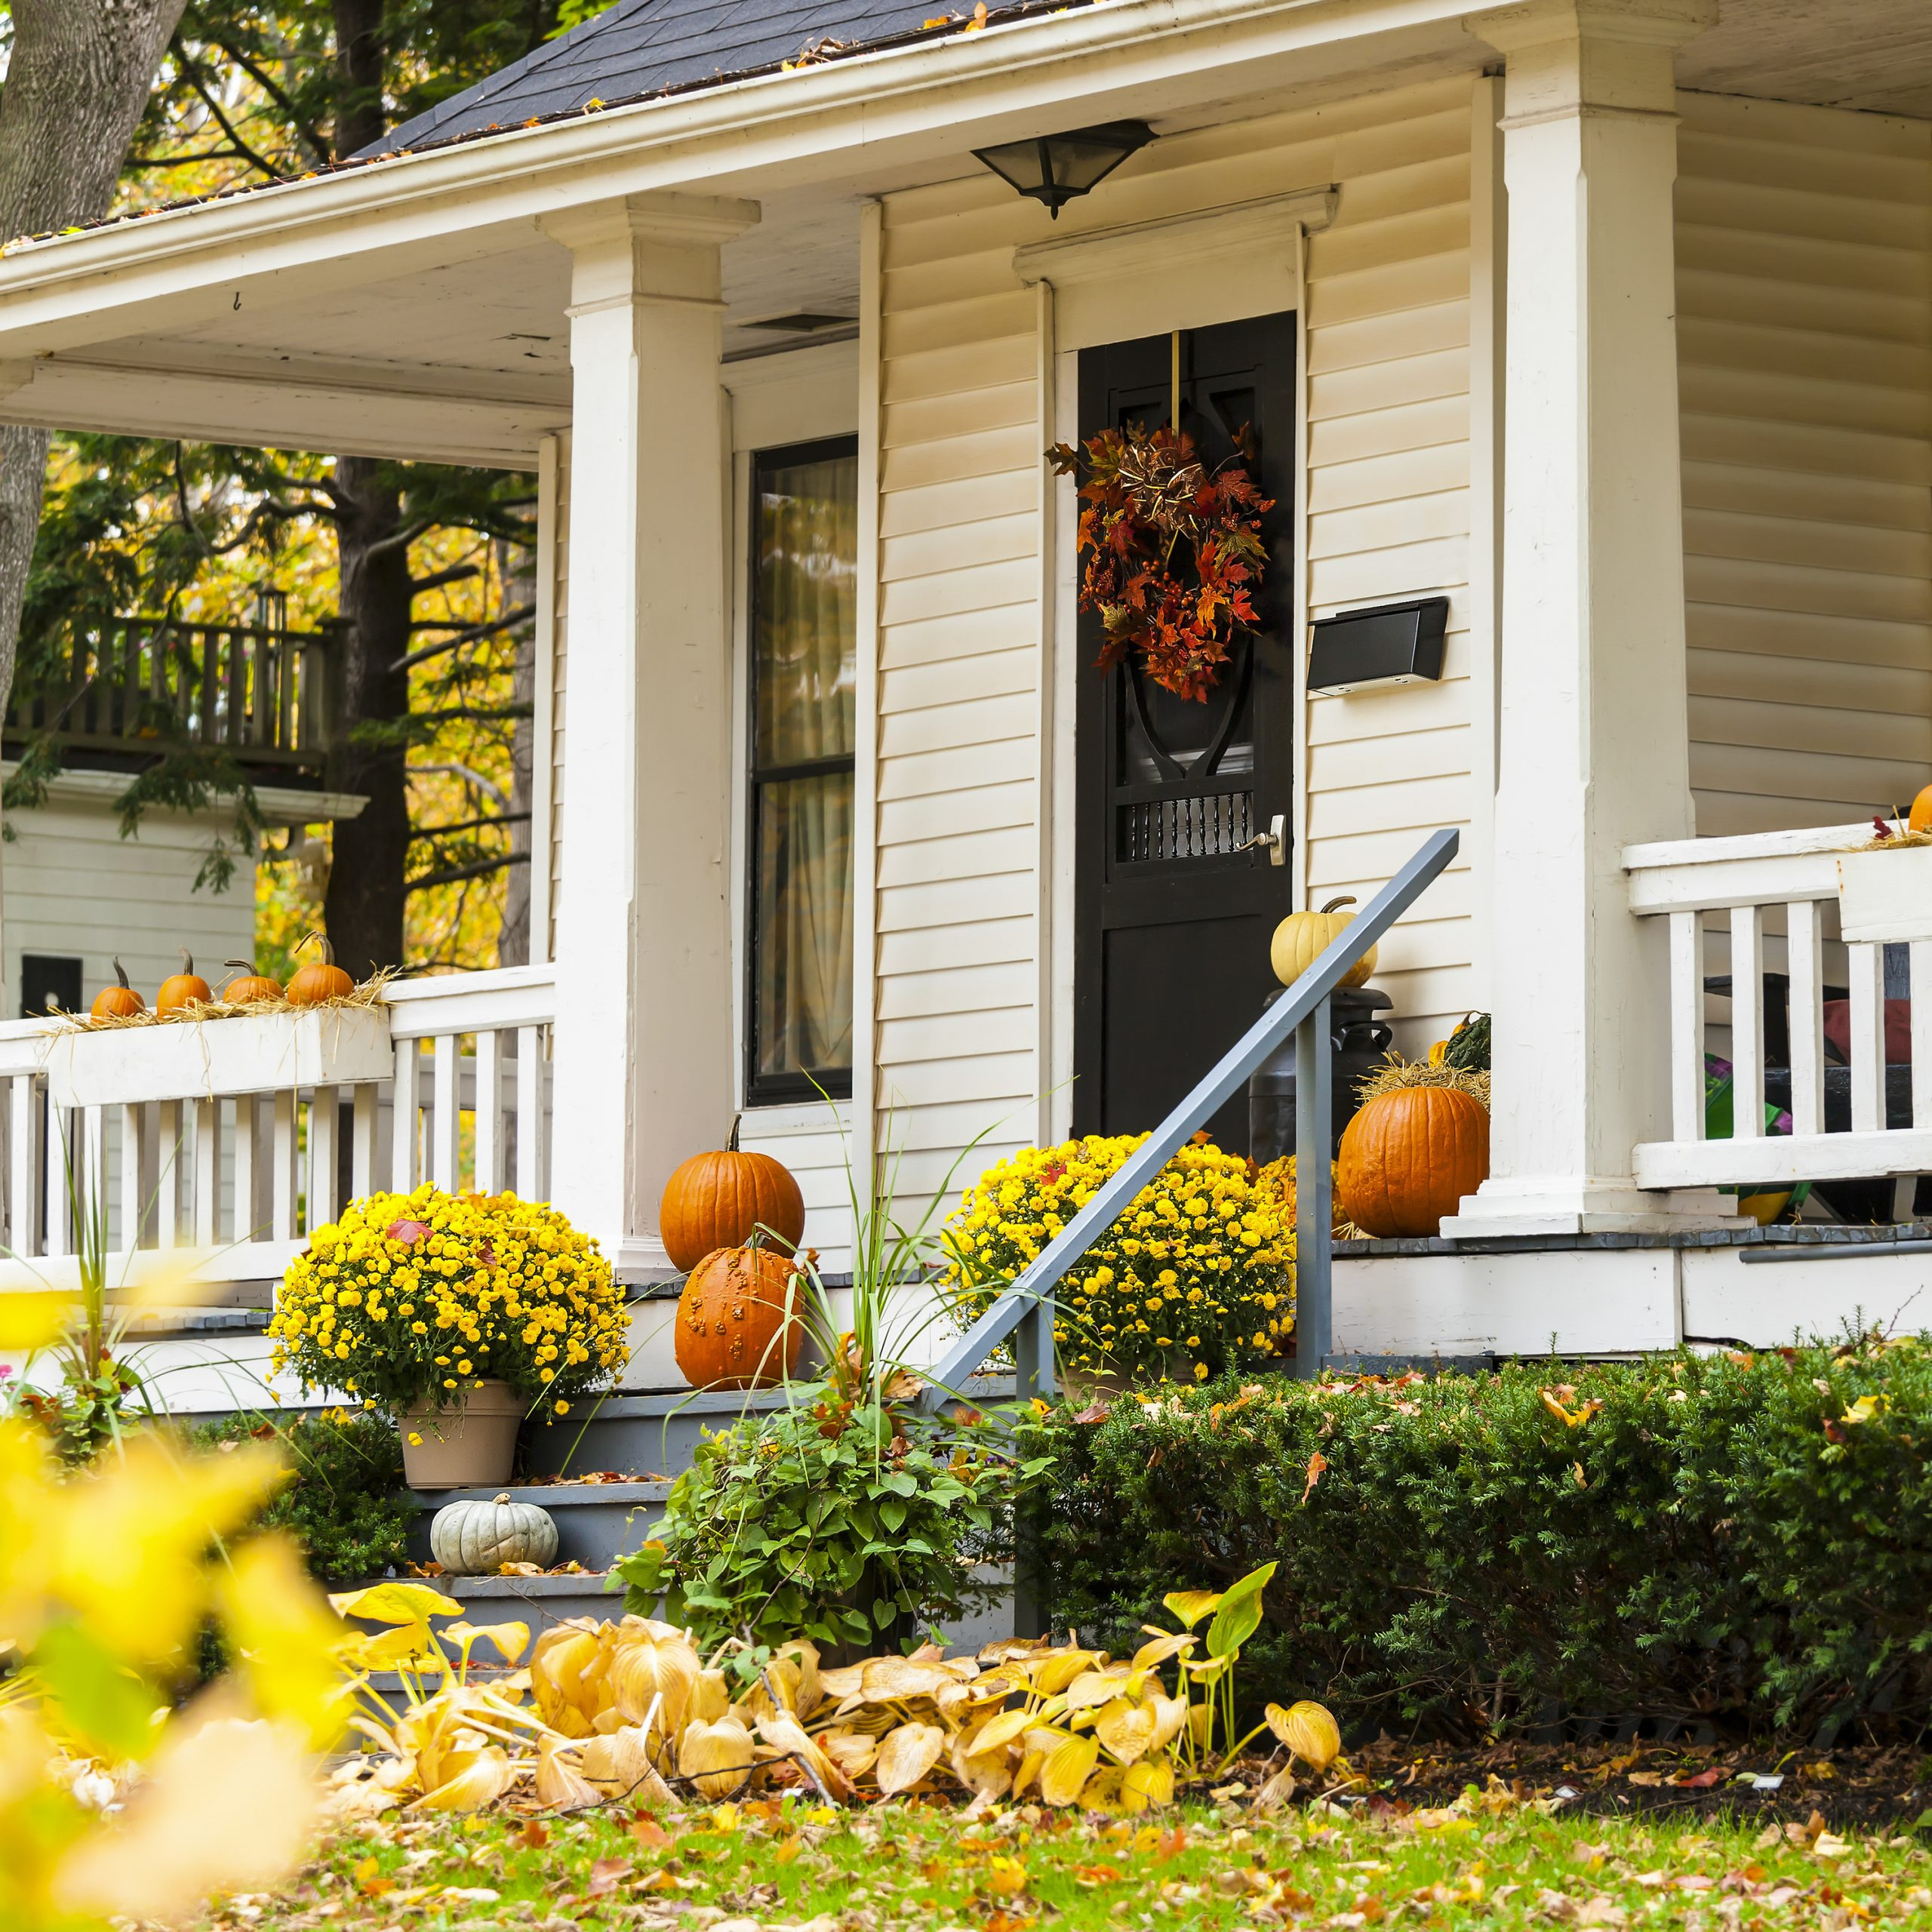 Seasonal front porch decor ideas with fall wreath on front door